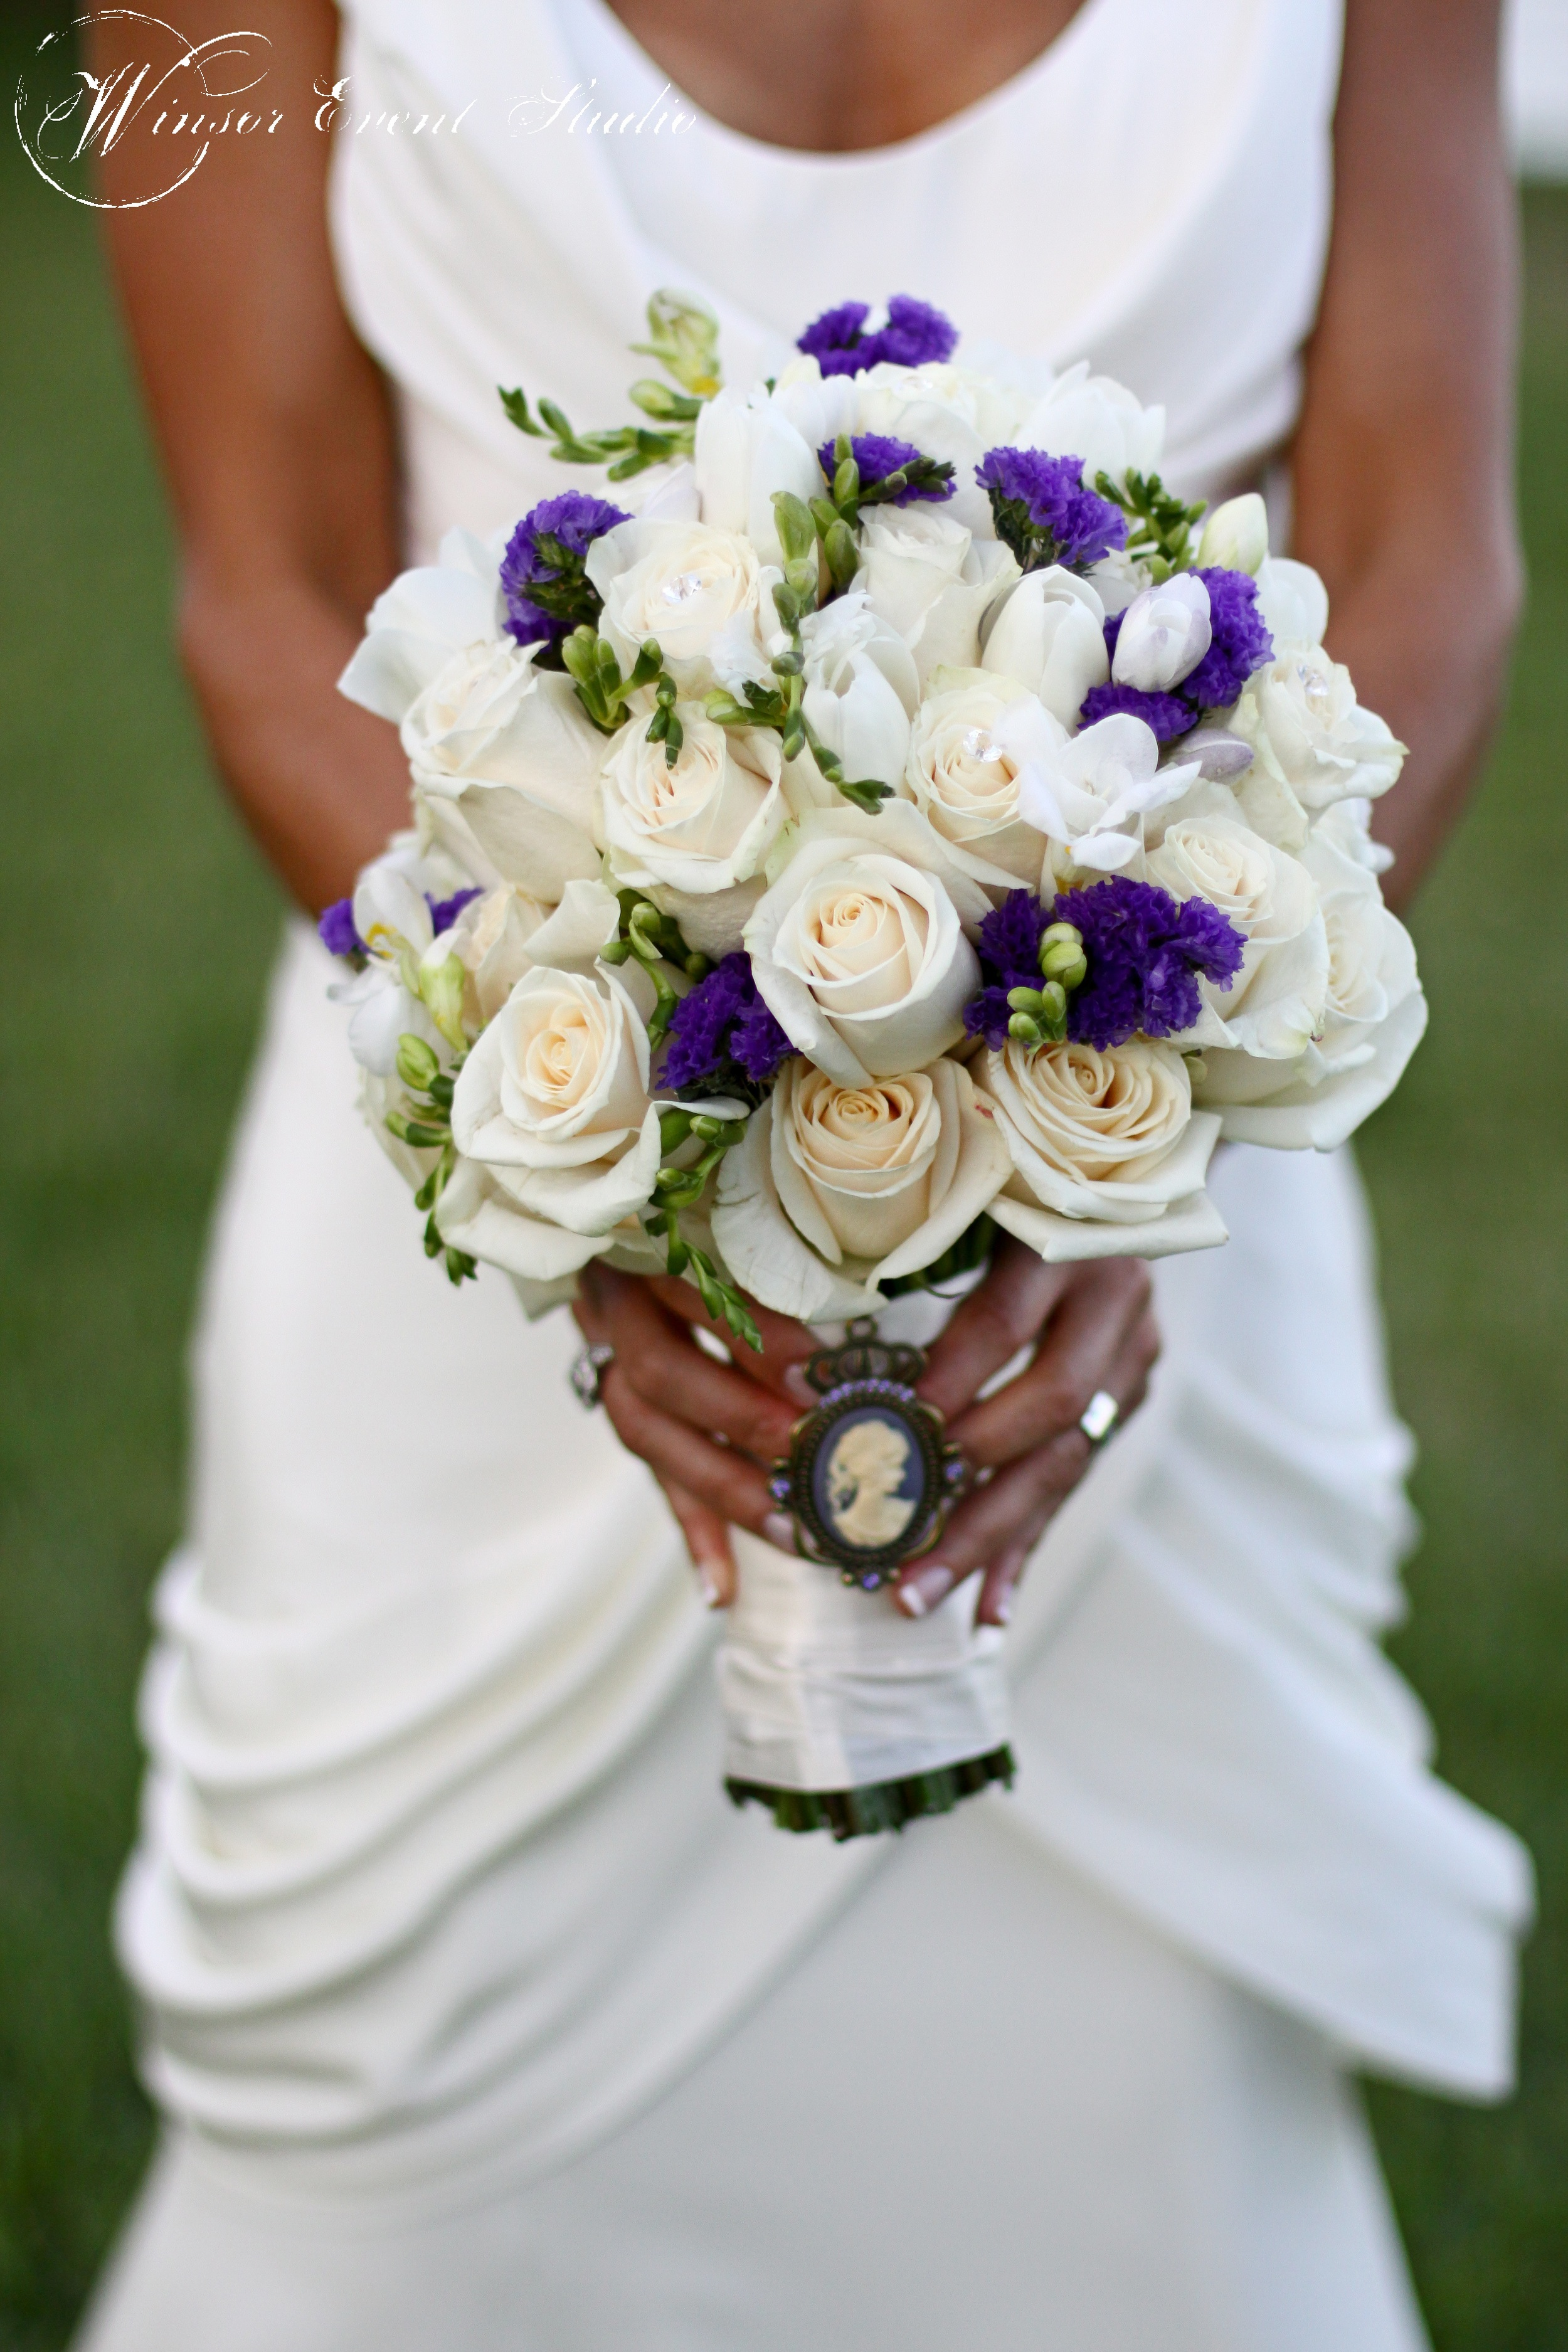 The bride's bouquet featured white roses, tulips, and freesia, with pops of purple and a vintage brooch.